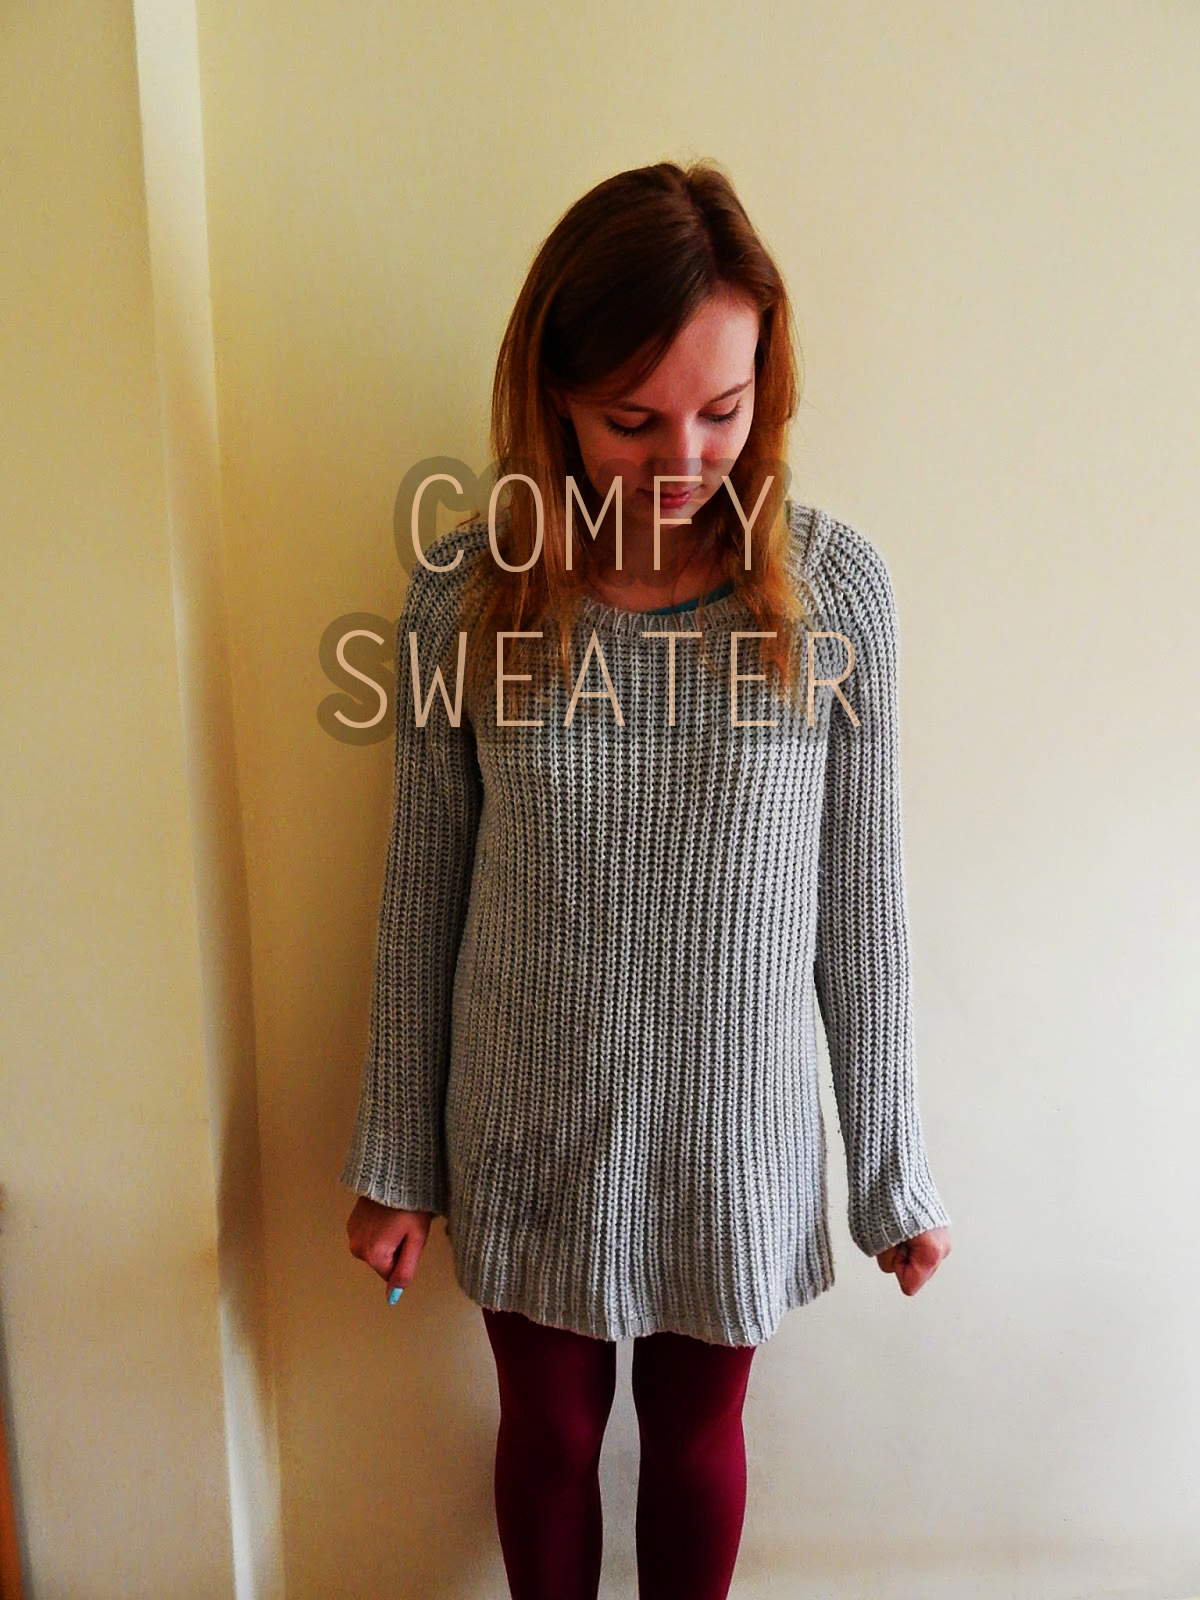 ~38 Comfy sweater